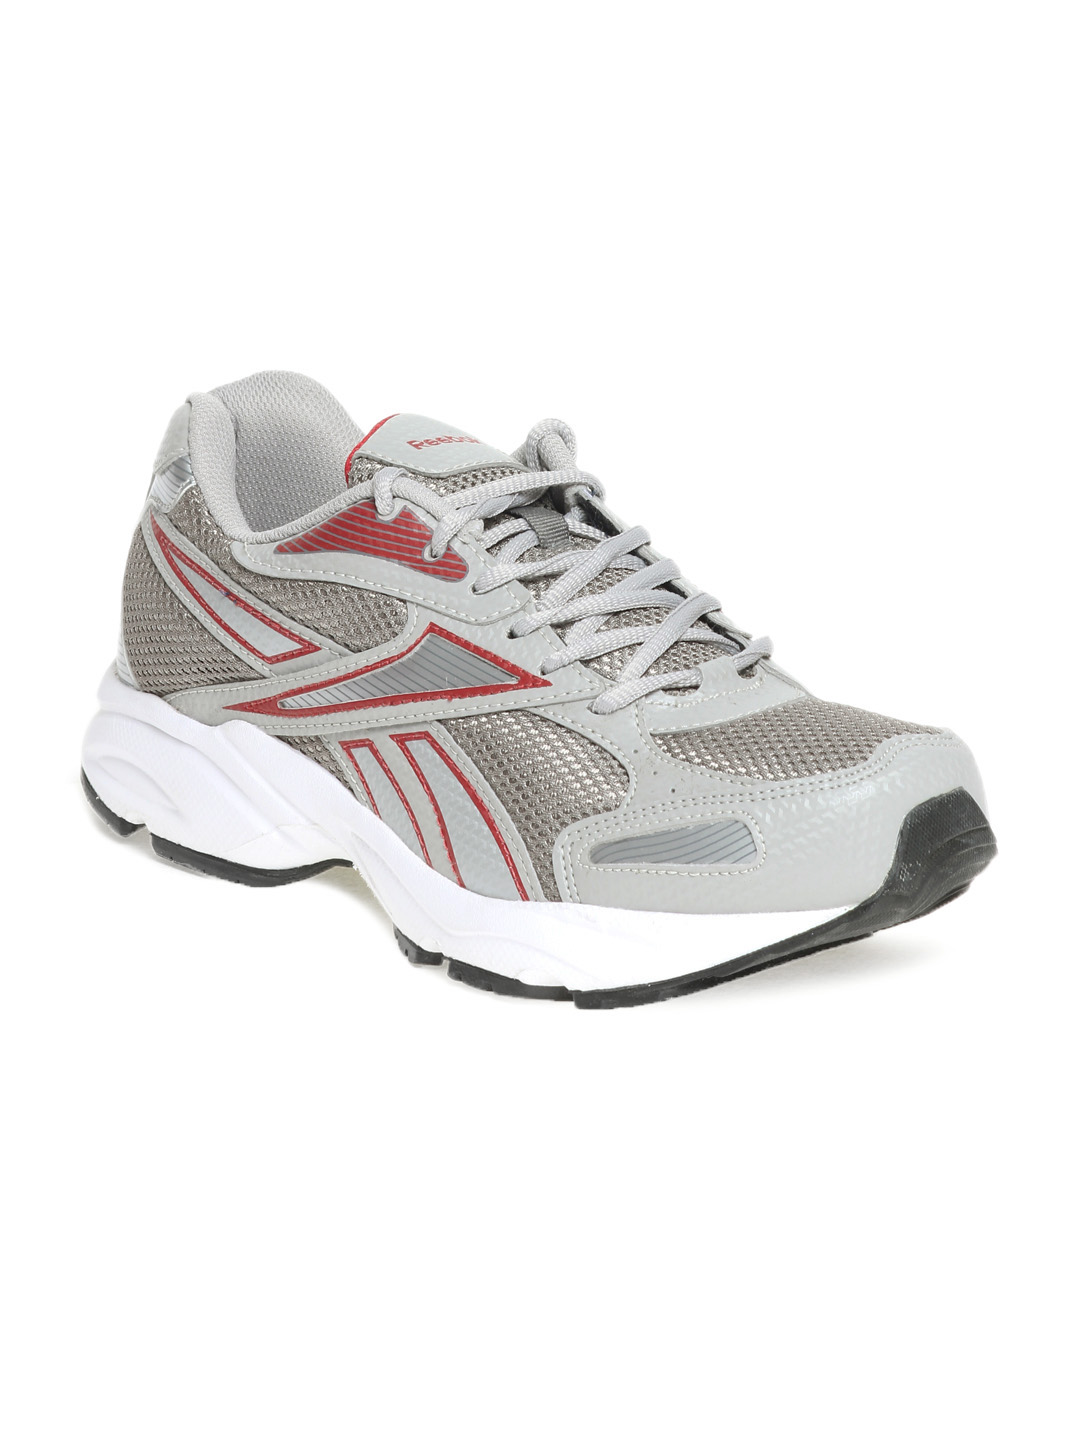 Reebok Men Grey United Runner Sports Shoes